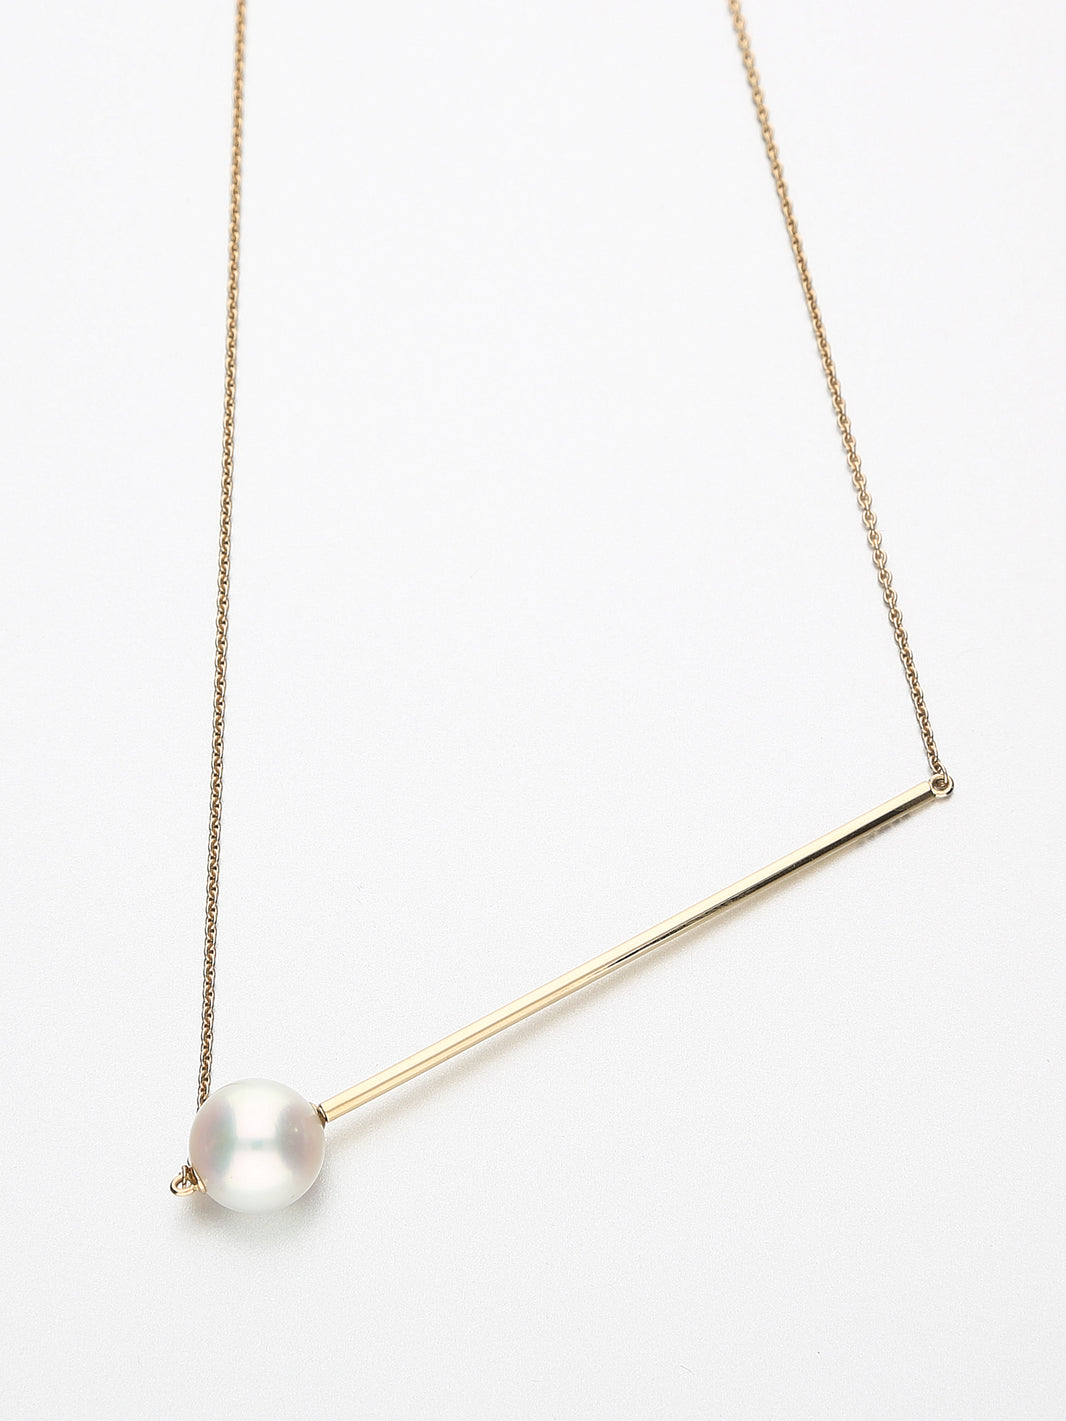 Abacus Pearl Necklace, Rose gold with white Southsea pearl 10mm